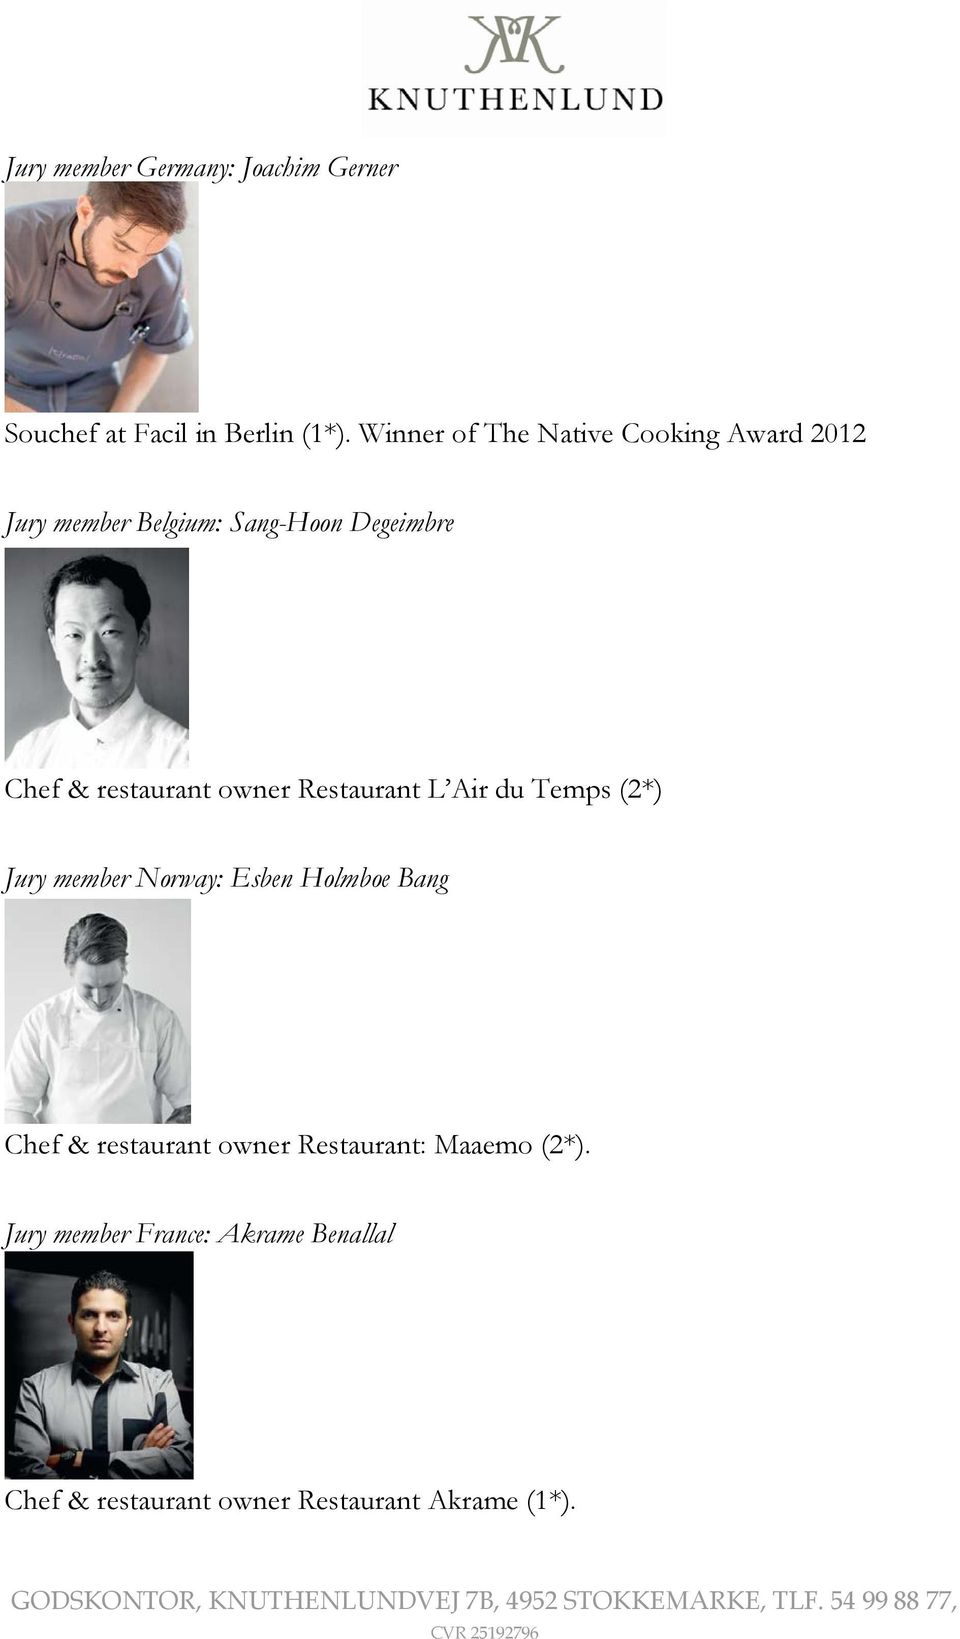 restaurant owner Restaurant L Air du Temps (2*) Jury member Norway: Esben Holmboe Bang Chef &